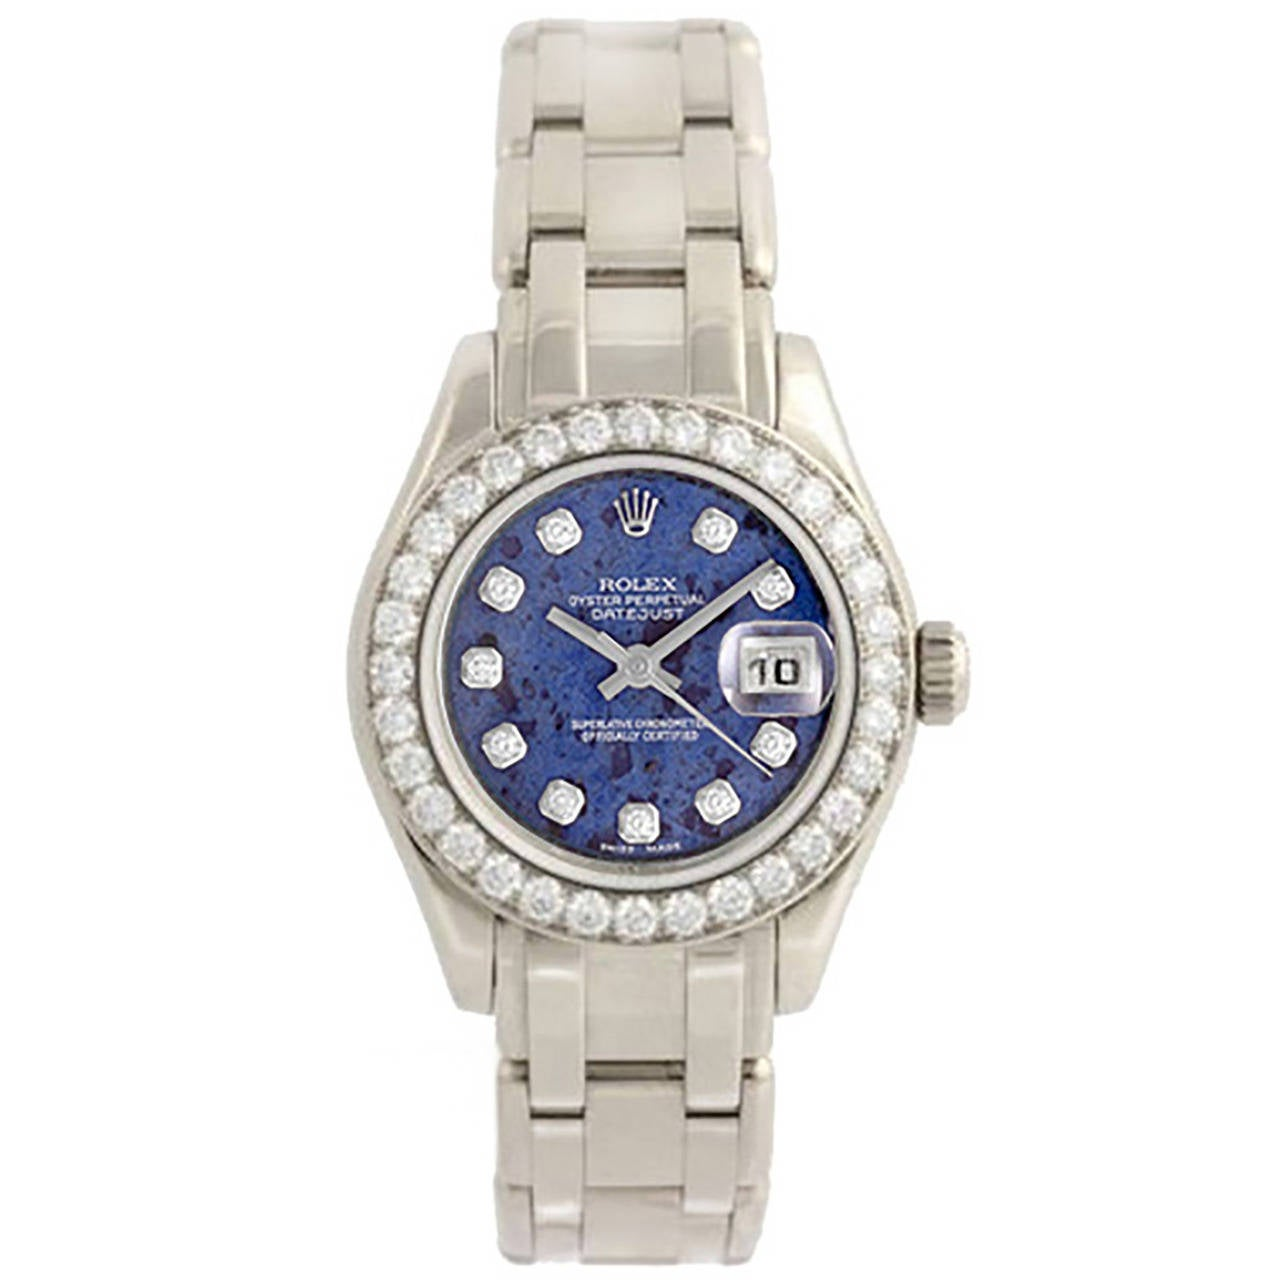 Rolex Lady's White Gold Sodalite Diamond Dial Pearlmaster Wristwatch Ref 80299